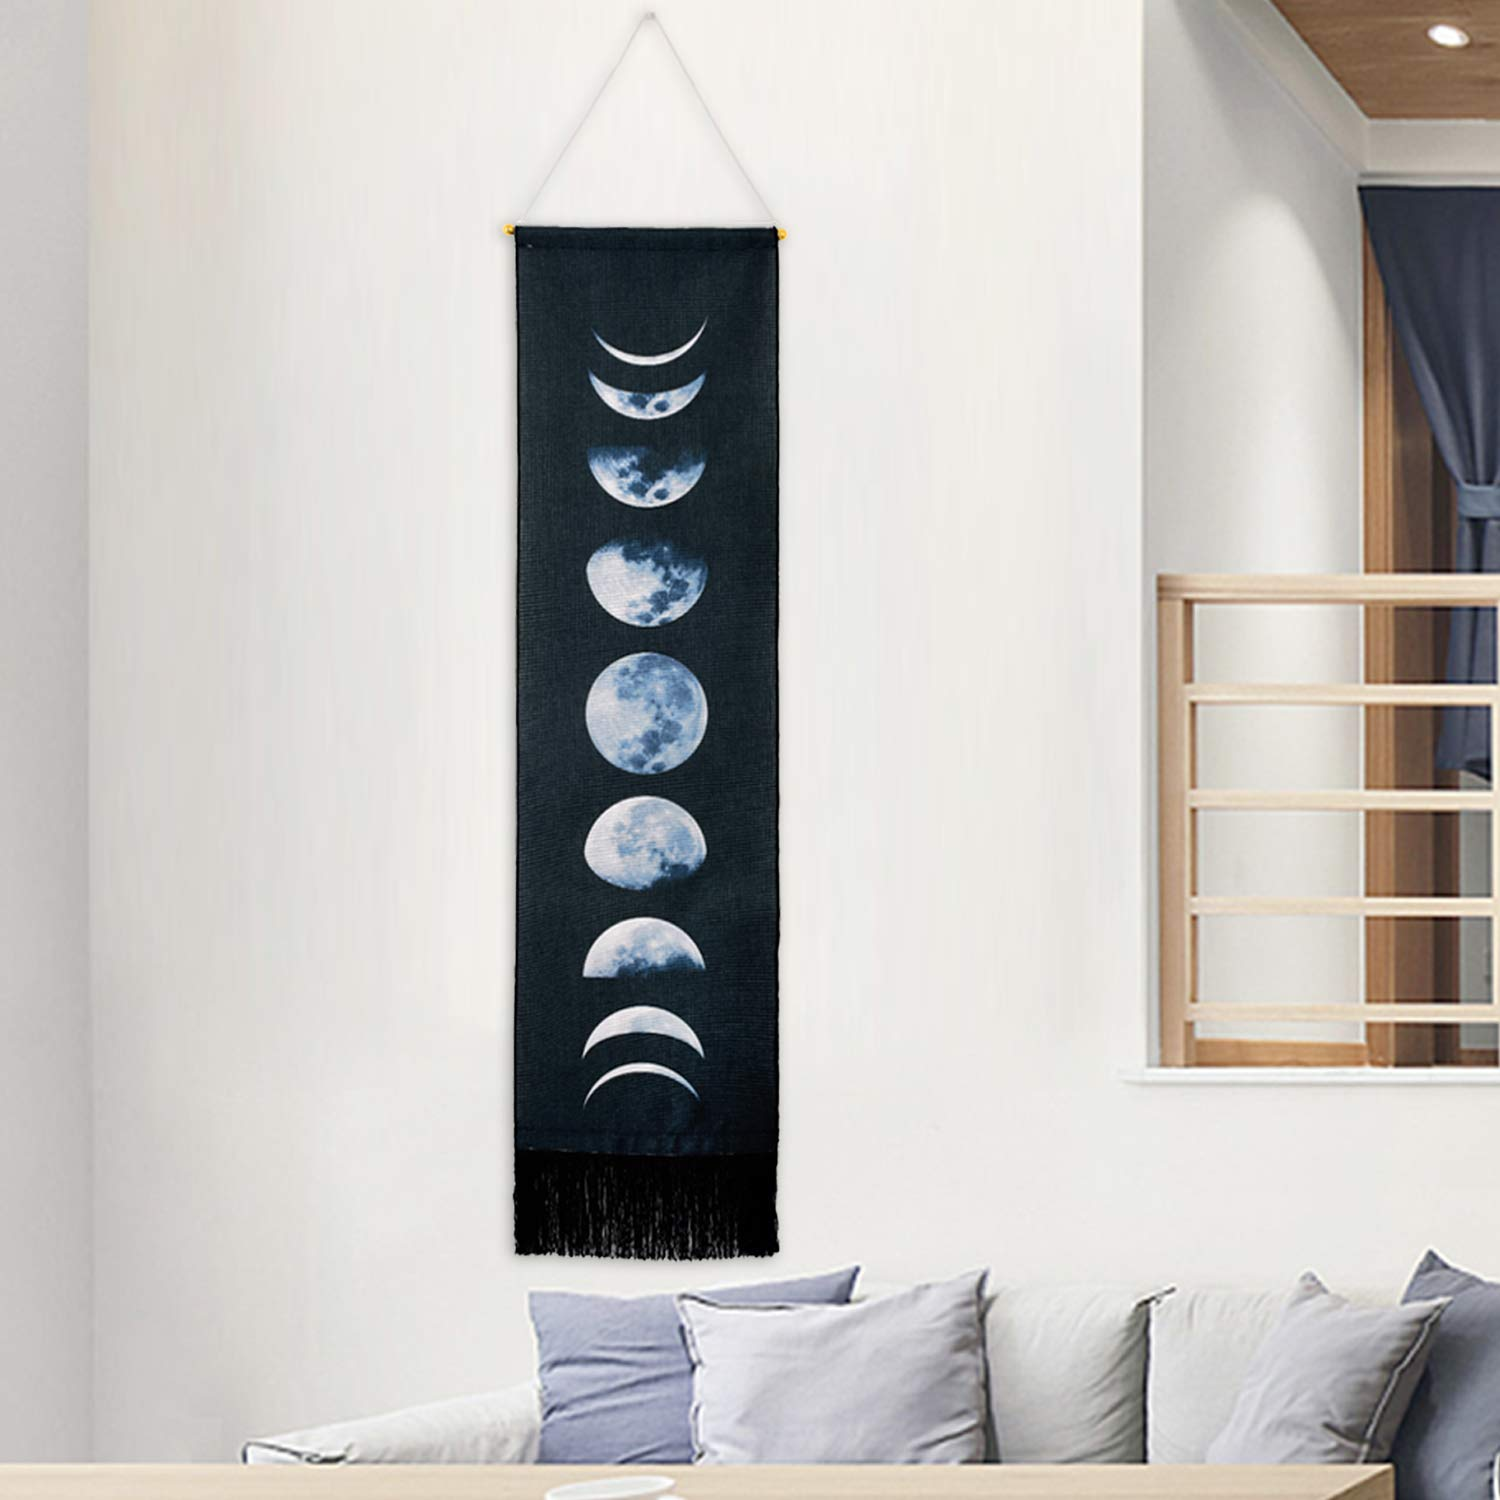 "Martine Mall Tapestry Wall Hanging Tapestries Nine Phases of The Full Growth Cycle of The Moon Wall Tapestry Cotton Linen Wall Art, Modern Home Decor (Black Moon Phase Change, 12.99"" x 52.75"")"